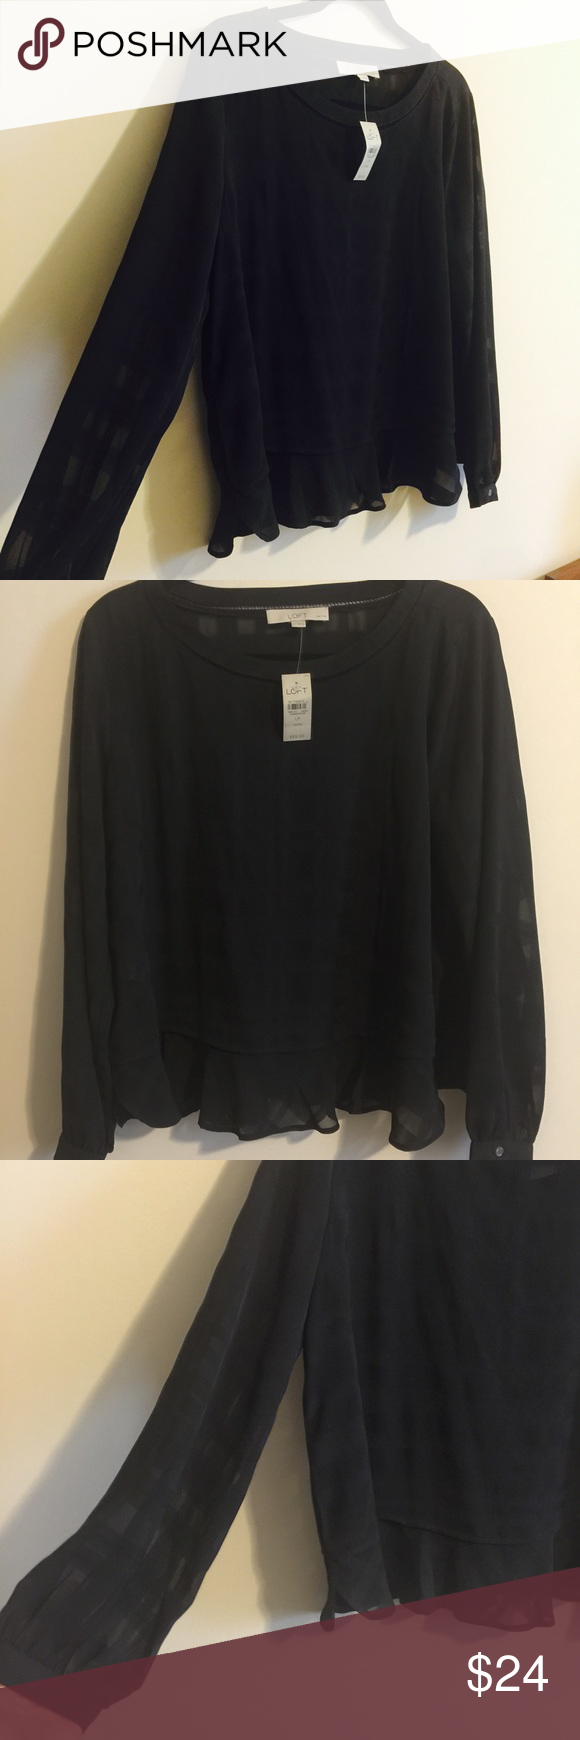 Loft ✨ Sheer Black Checkerboard Blouse NWT, never worn, beautiful black dressy top! Meant to wear out (not tucked in). Size Large Petite. Pretty & perfect! LOFT Tops Blouses